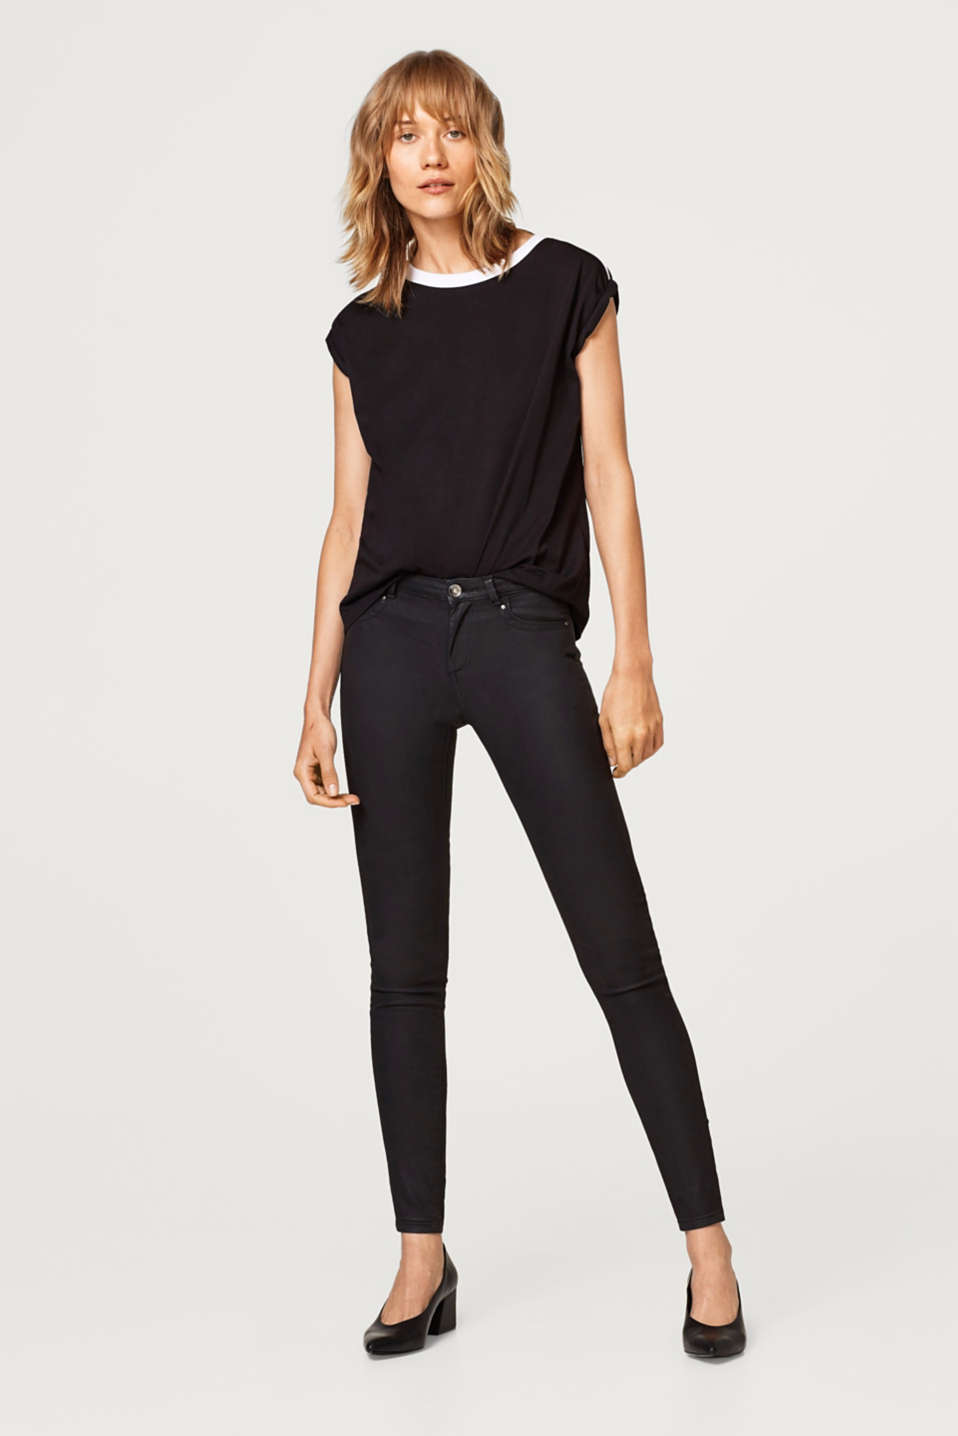 Esprit - Schmale Stretch-Pants im Coated-Look